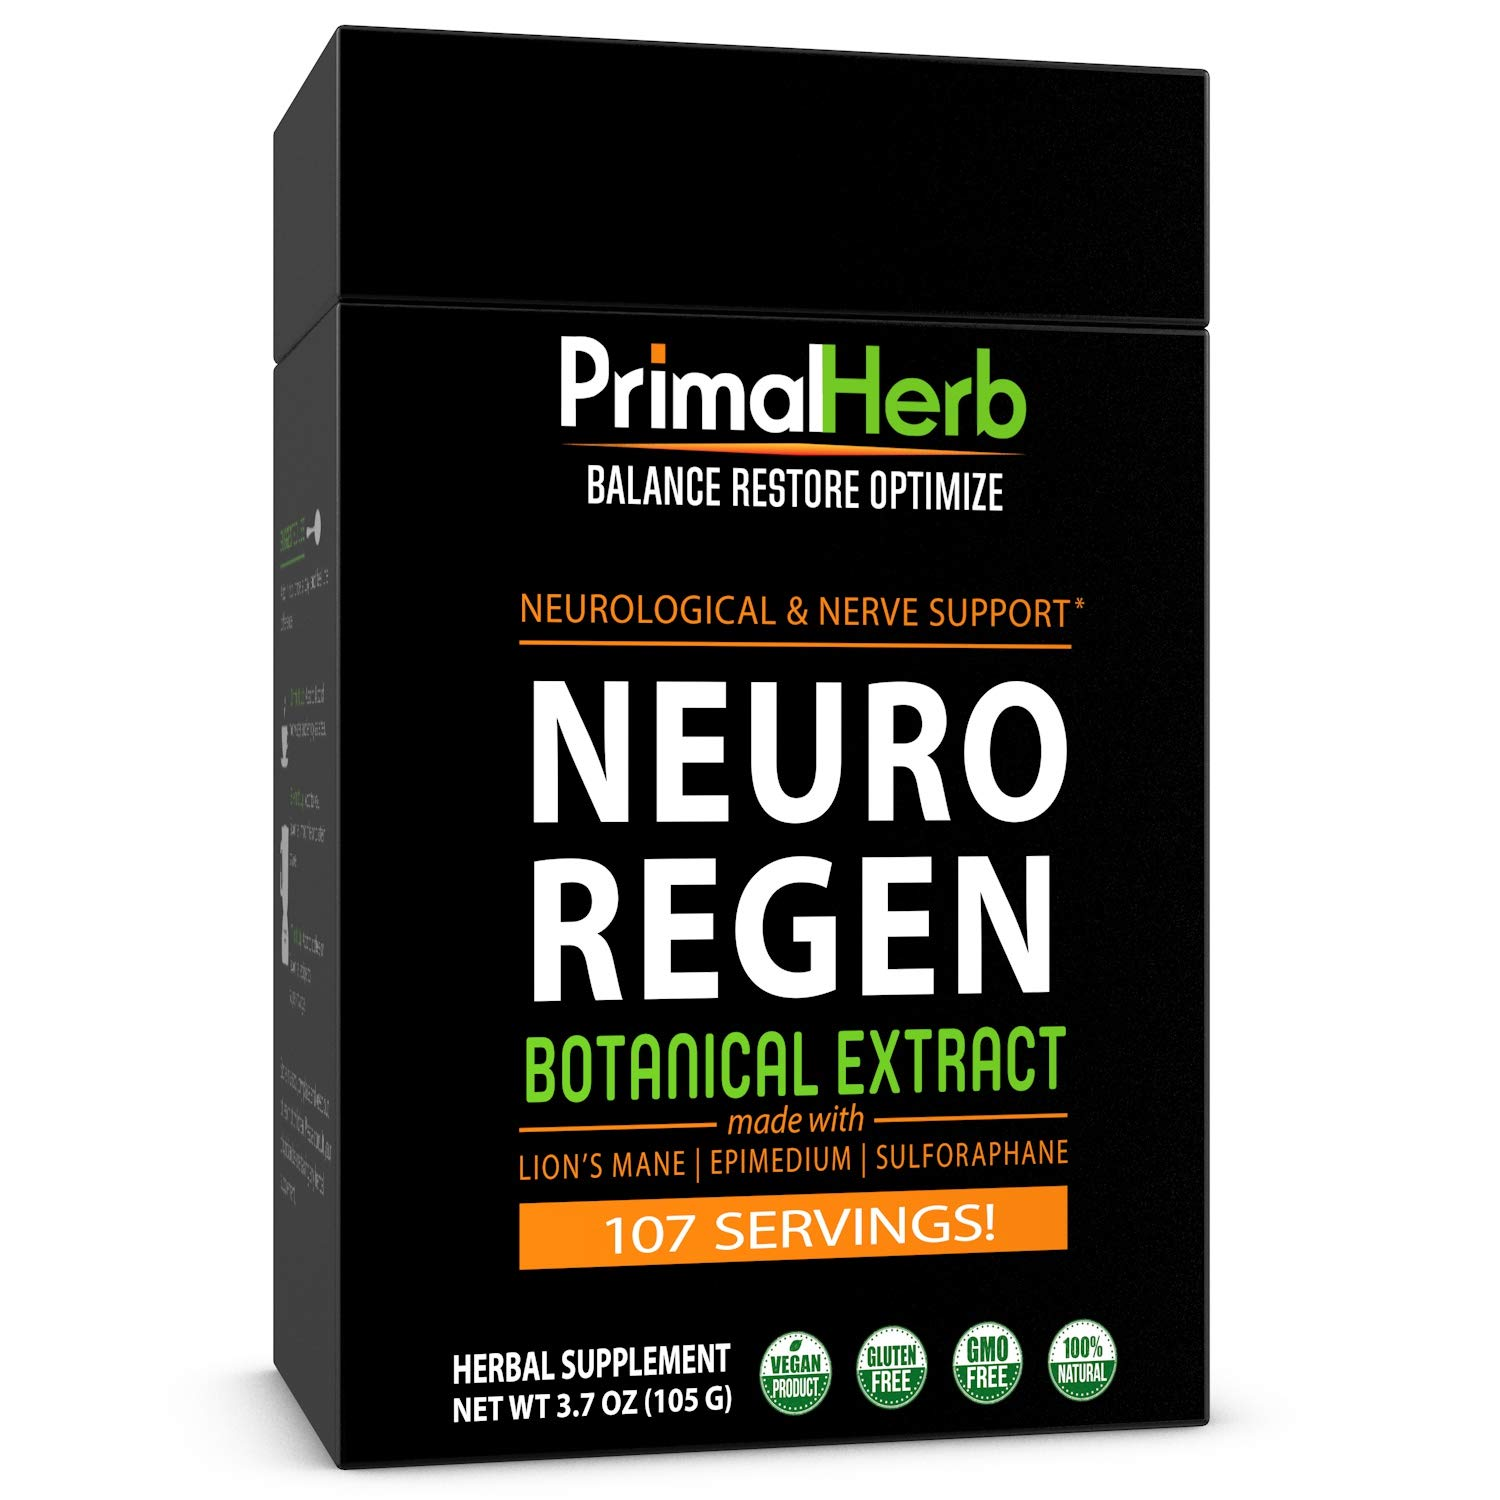 Nerve Support, Neuropathy and Nerve Pain Relief Neuro Regen by Primal Herb Lion s Mane Mushroom, Epimedium, Sulforaphane Extract Powder – 113 Servings – Includes Spoon